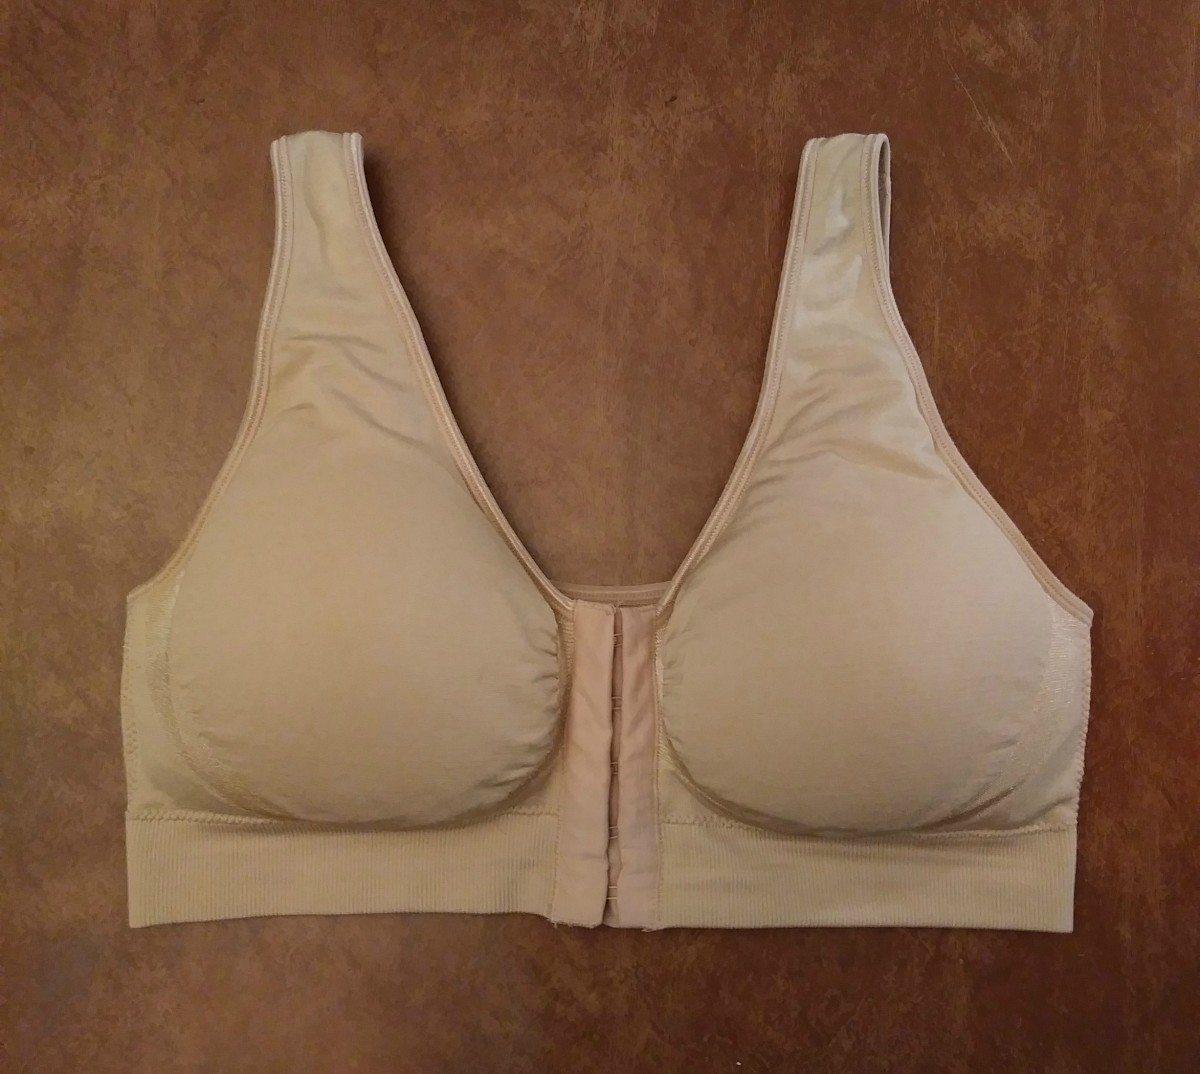 I made this simple bra stuffed with ribbon from a shower ball for everyday wear.